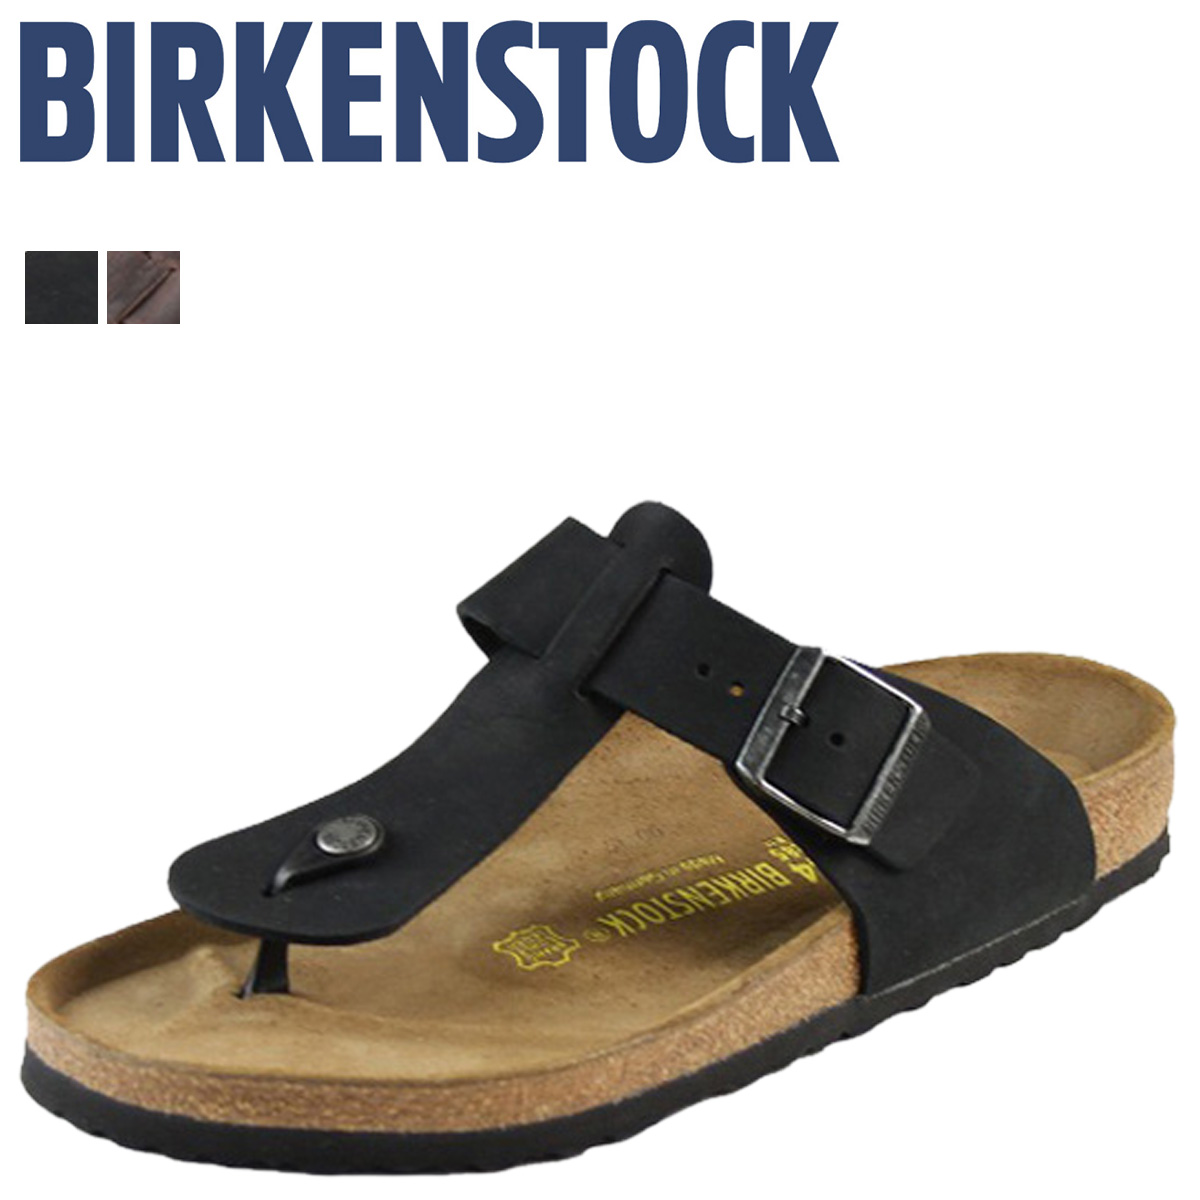 Birkenstock-BIRKENSTOCK Medina MEDINA [normal width leather] [regular] 2 color Womens mens unisex